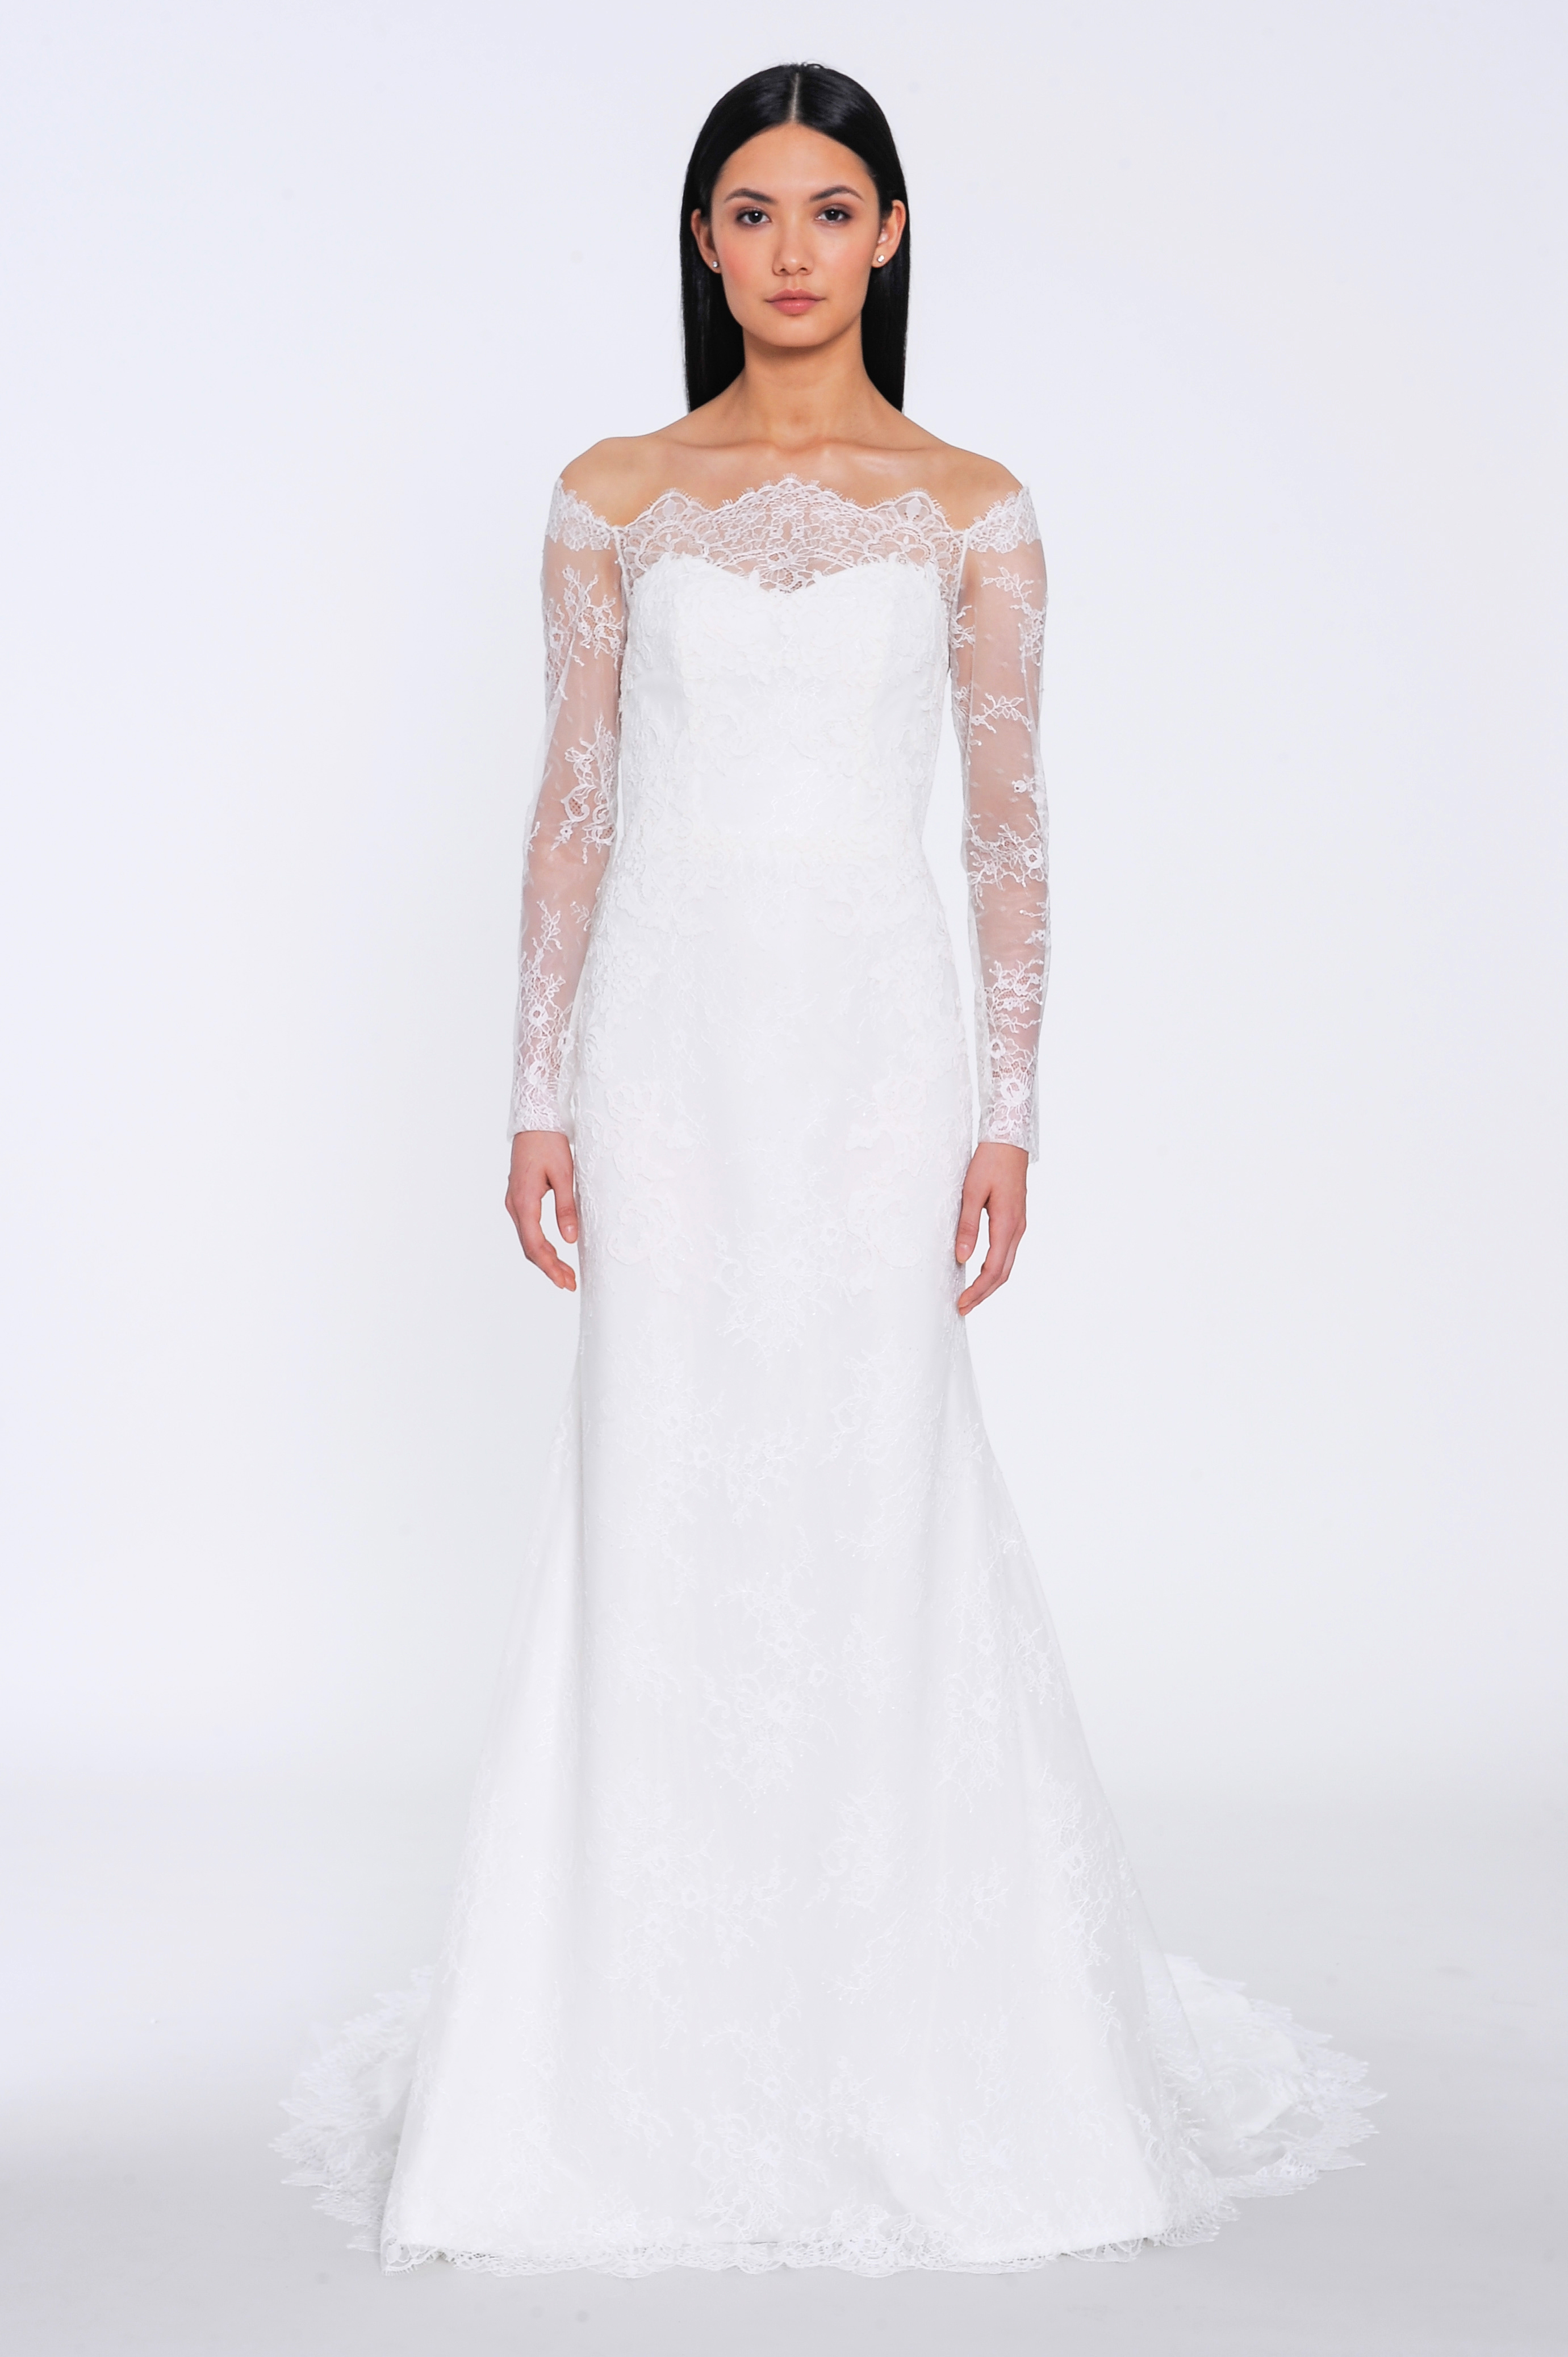 allison webb wedding dress spring 2019 off-the-shoulder